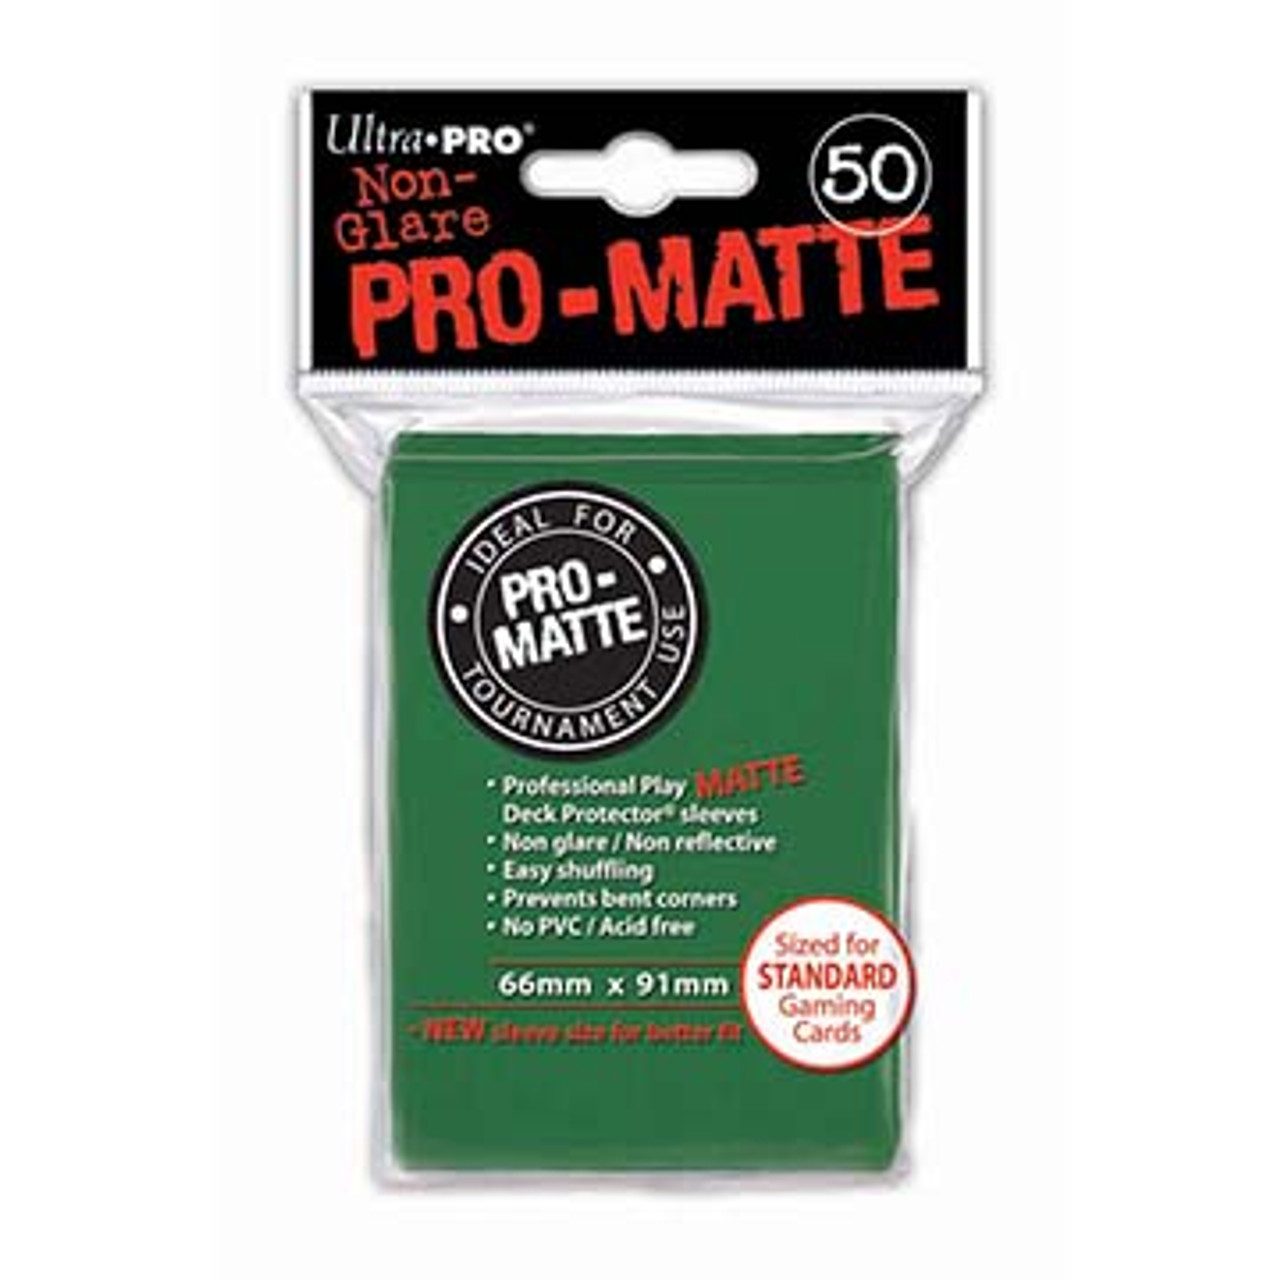 Deck Protectors - Pro-Matte - Green (One Pack of 50)